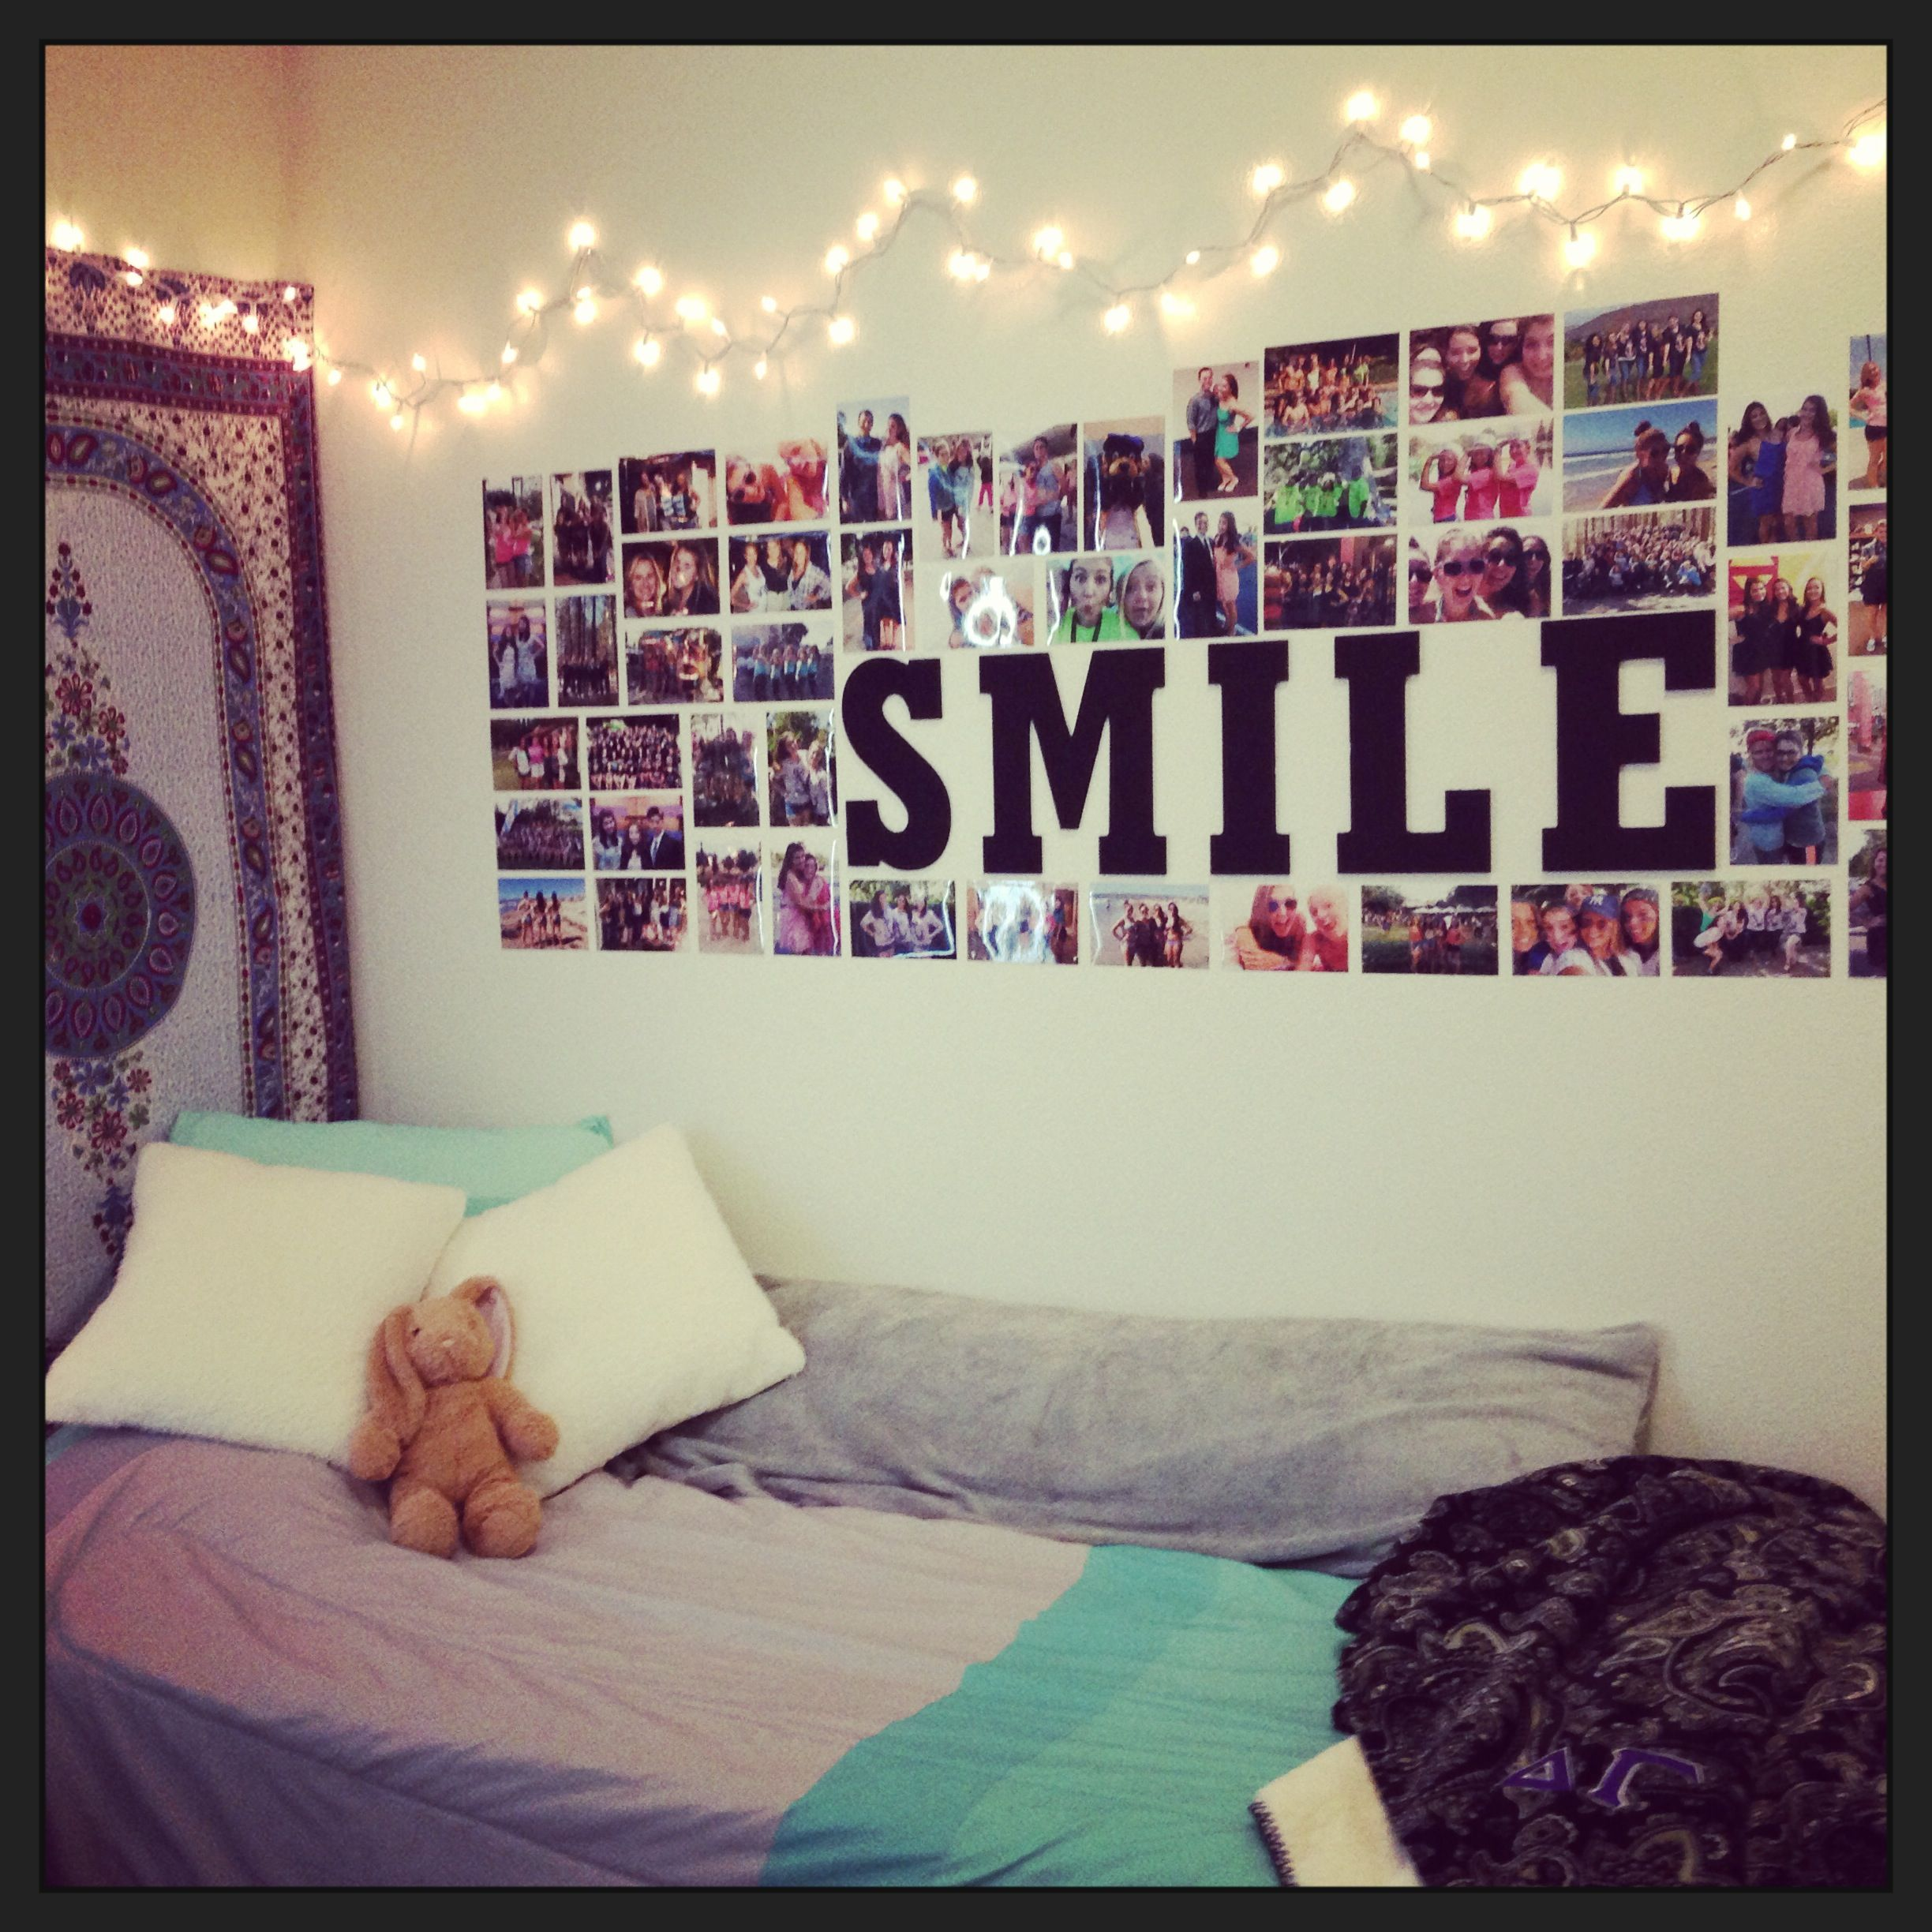 cute way to furnish your dorm room a cheap tapestry homemade painted wooden letters - Ways To Decorate Bedroom Walls